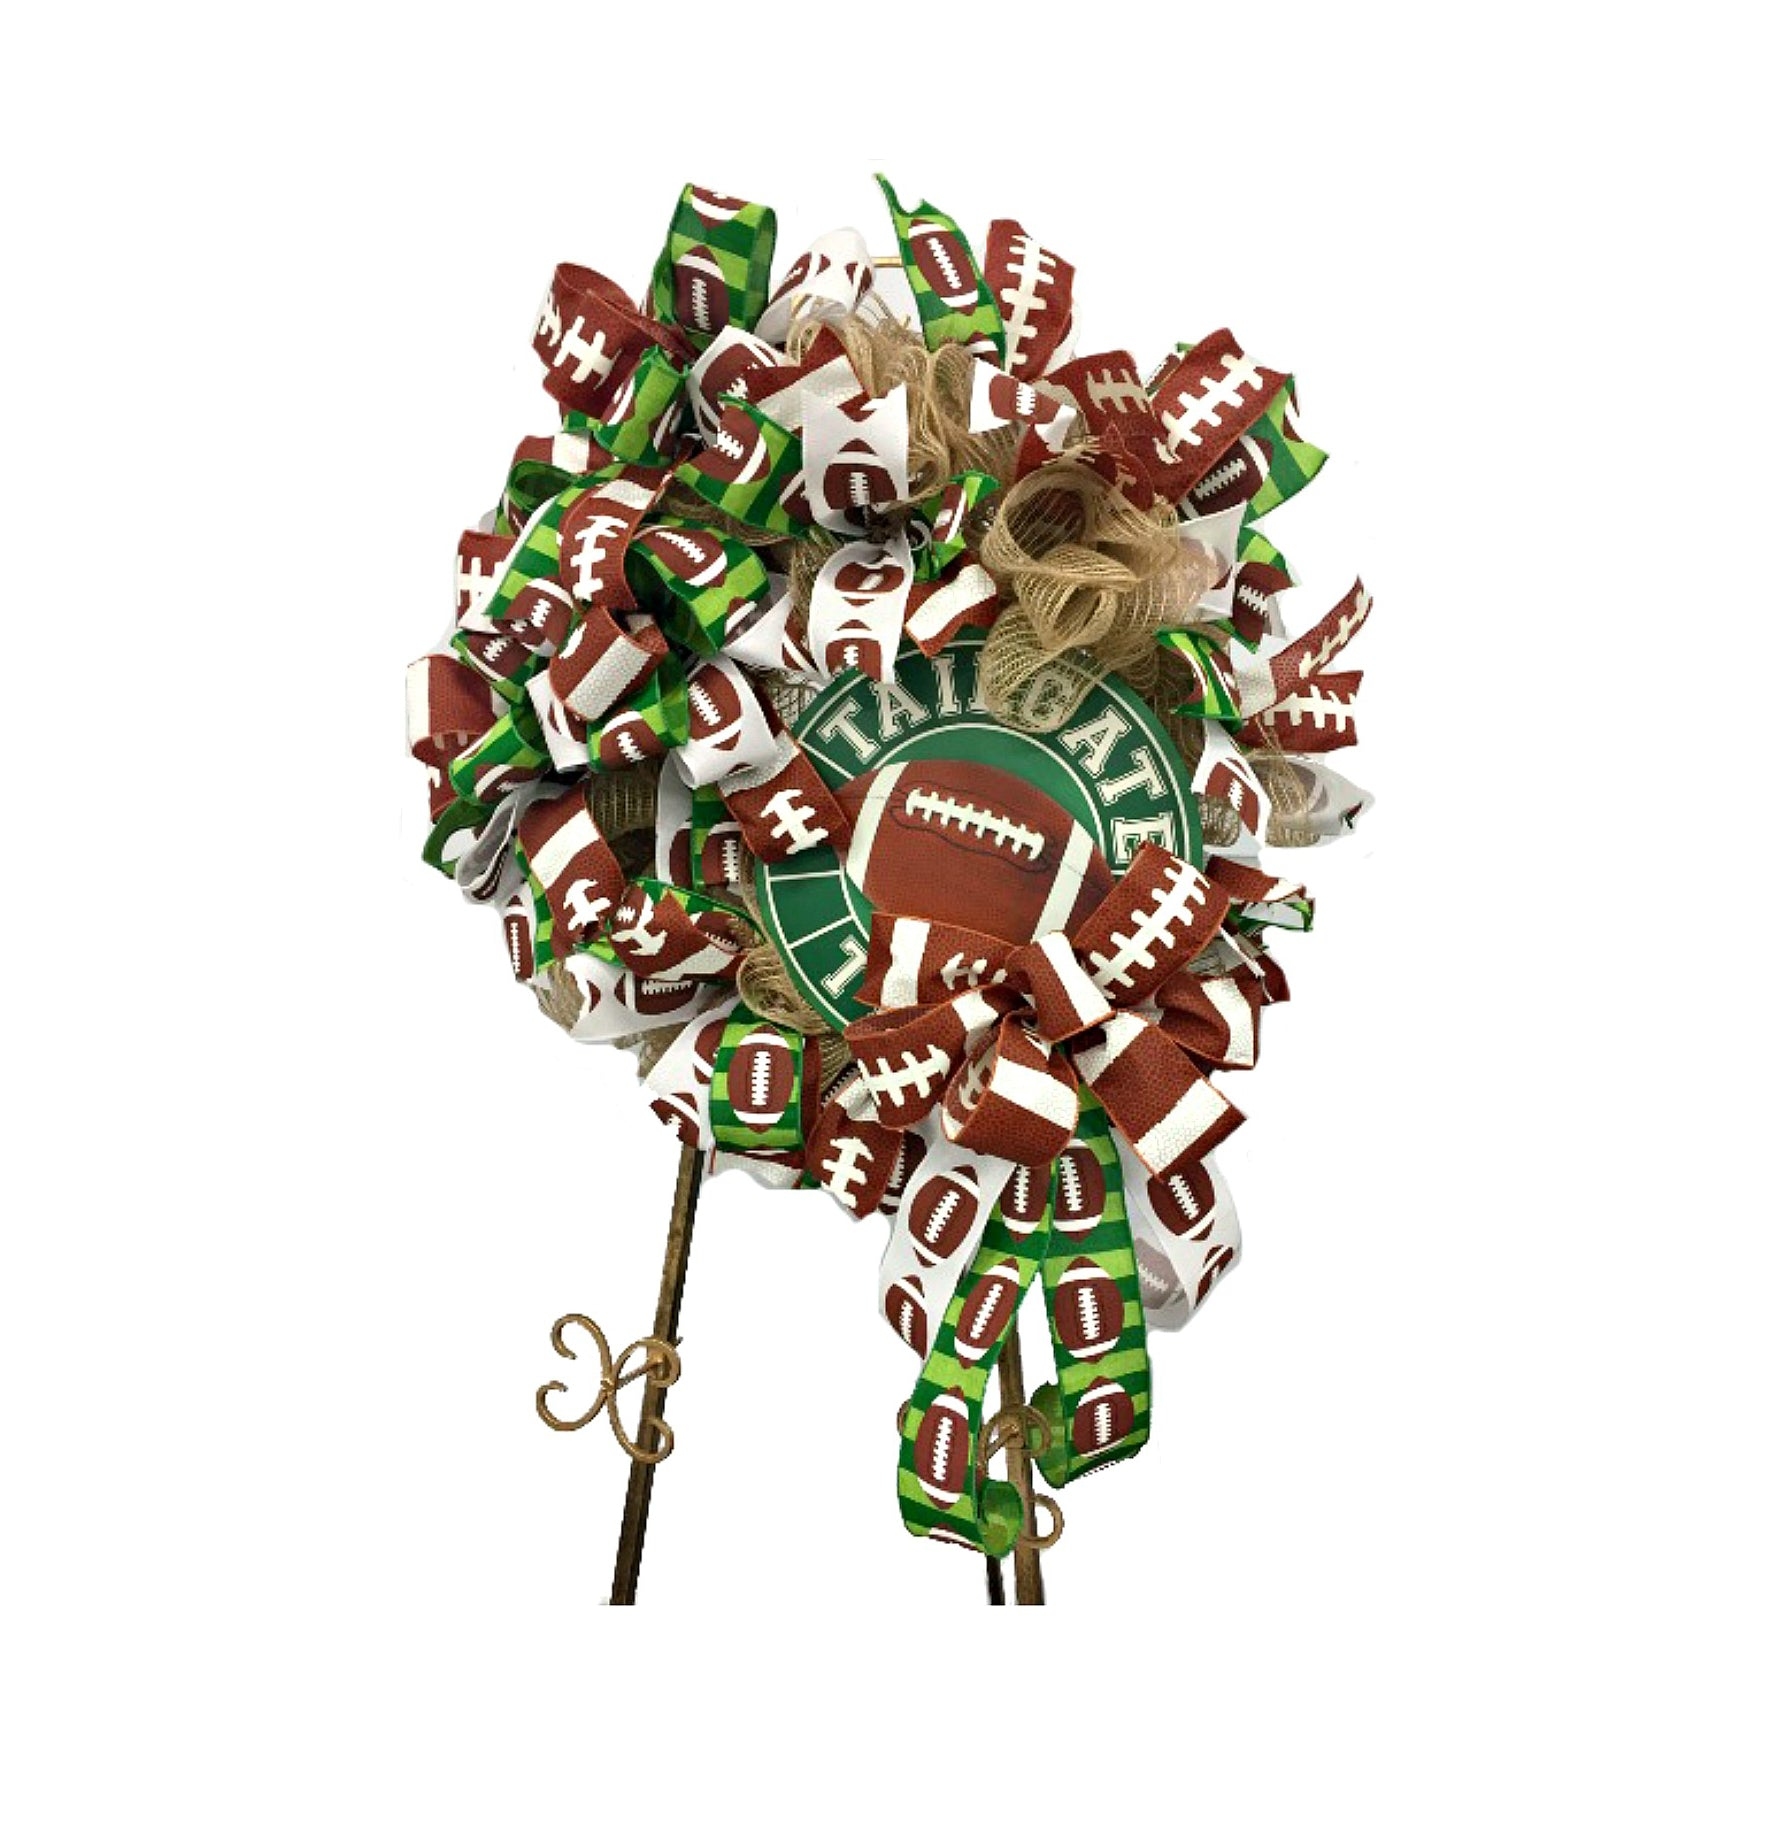 How to Make a Football Wreath